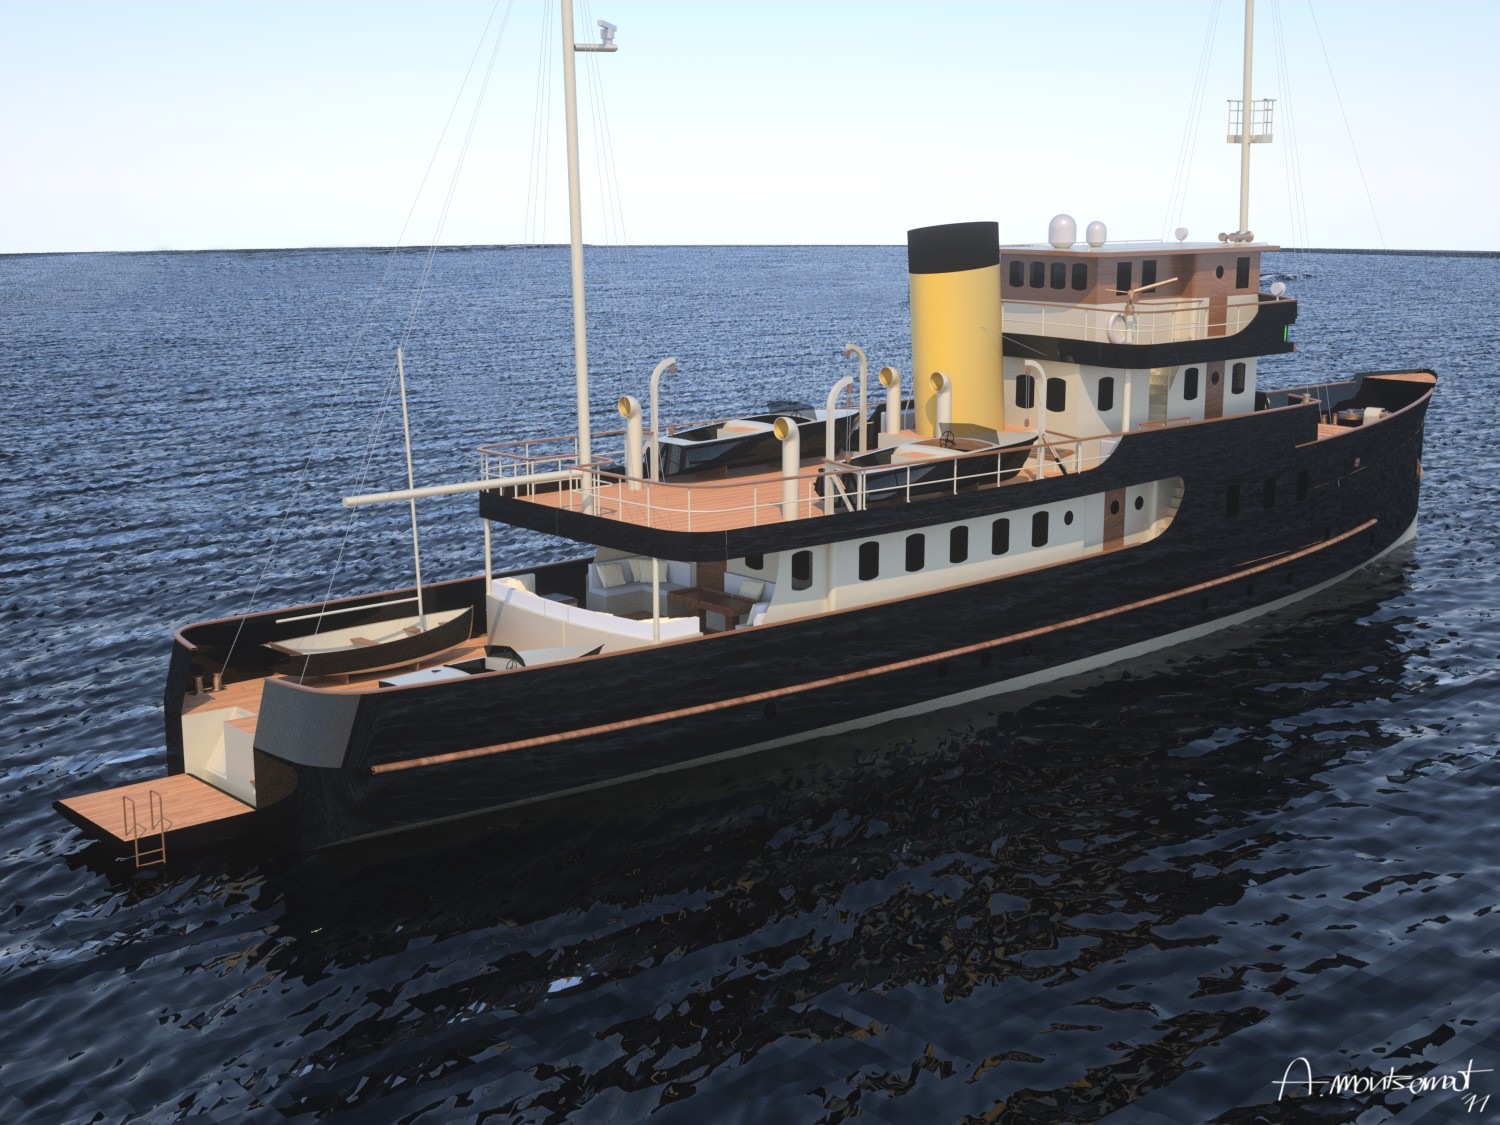 36m classic gentleman 39 s motor yacht mylne pf36 by a mylne for Vintage motor yachts for sale